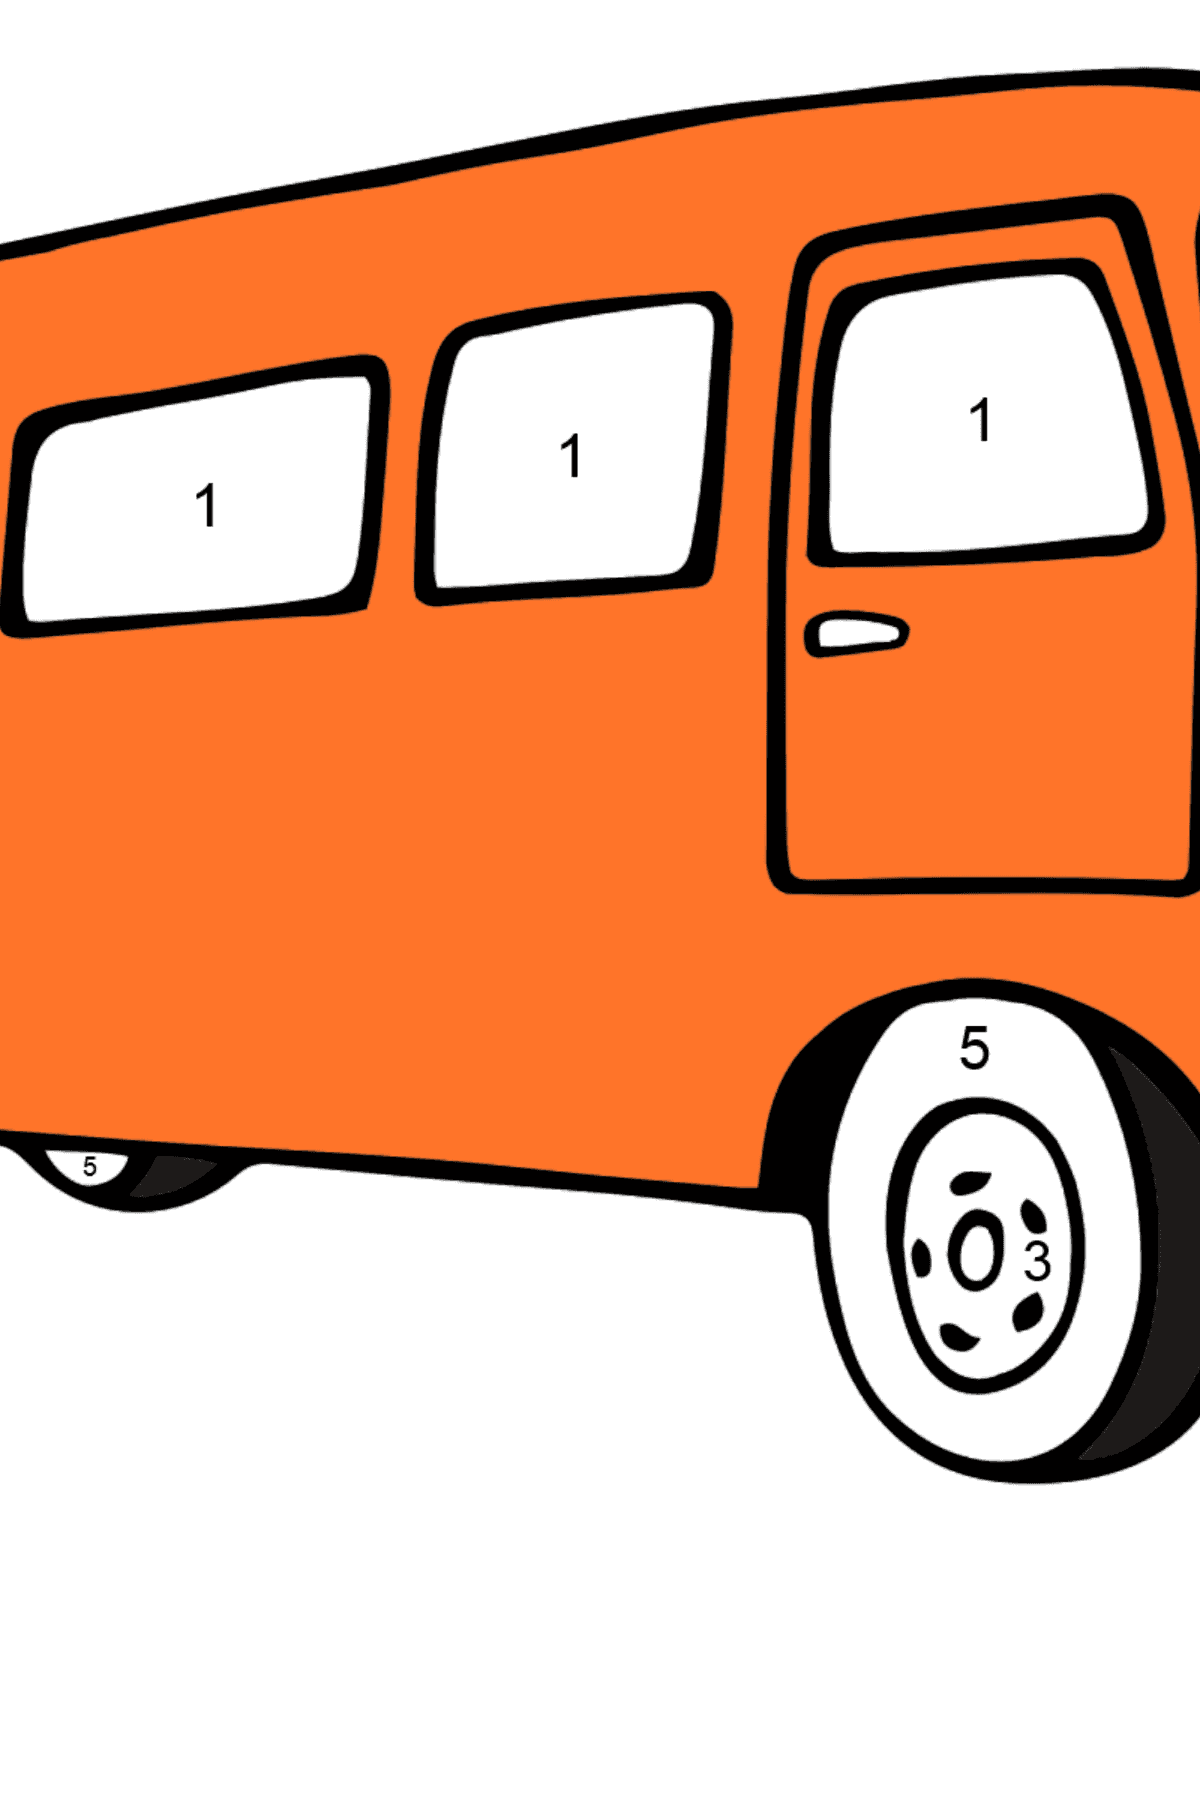 Coloring Page - A Traveling Bus - Coloring by Numbers for Kids